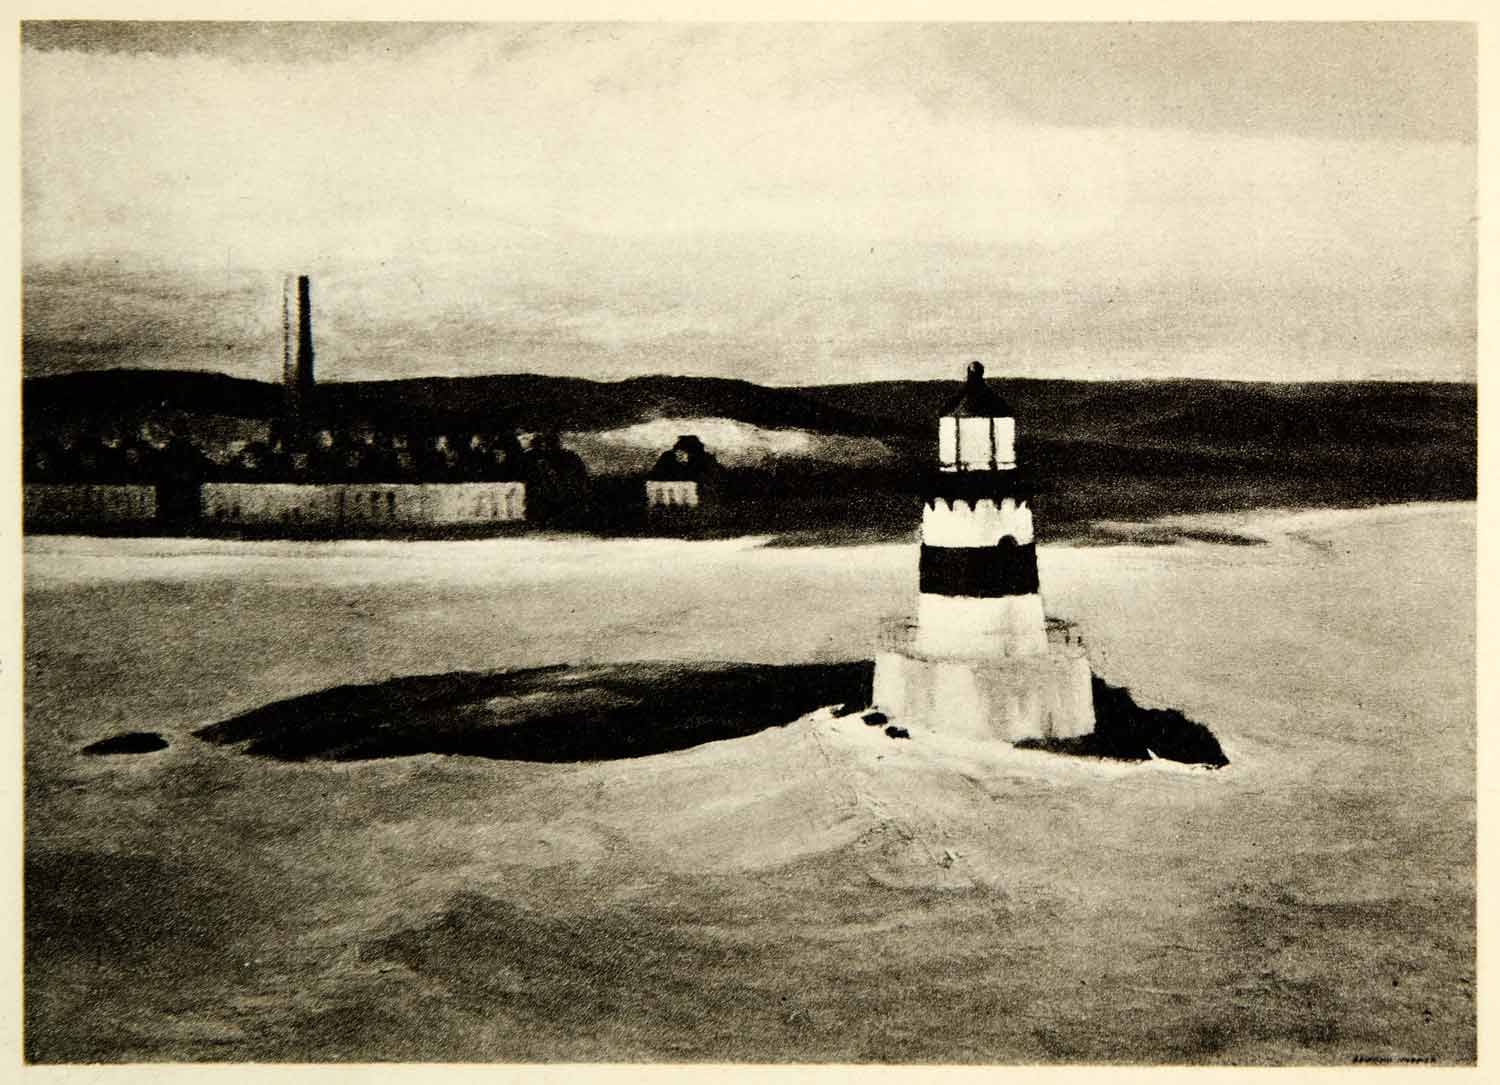 1945 Rotogravure Shoreline Coast Lighthouse 5 AM Light Sea Ocean Edward XAJA2